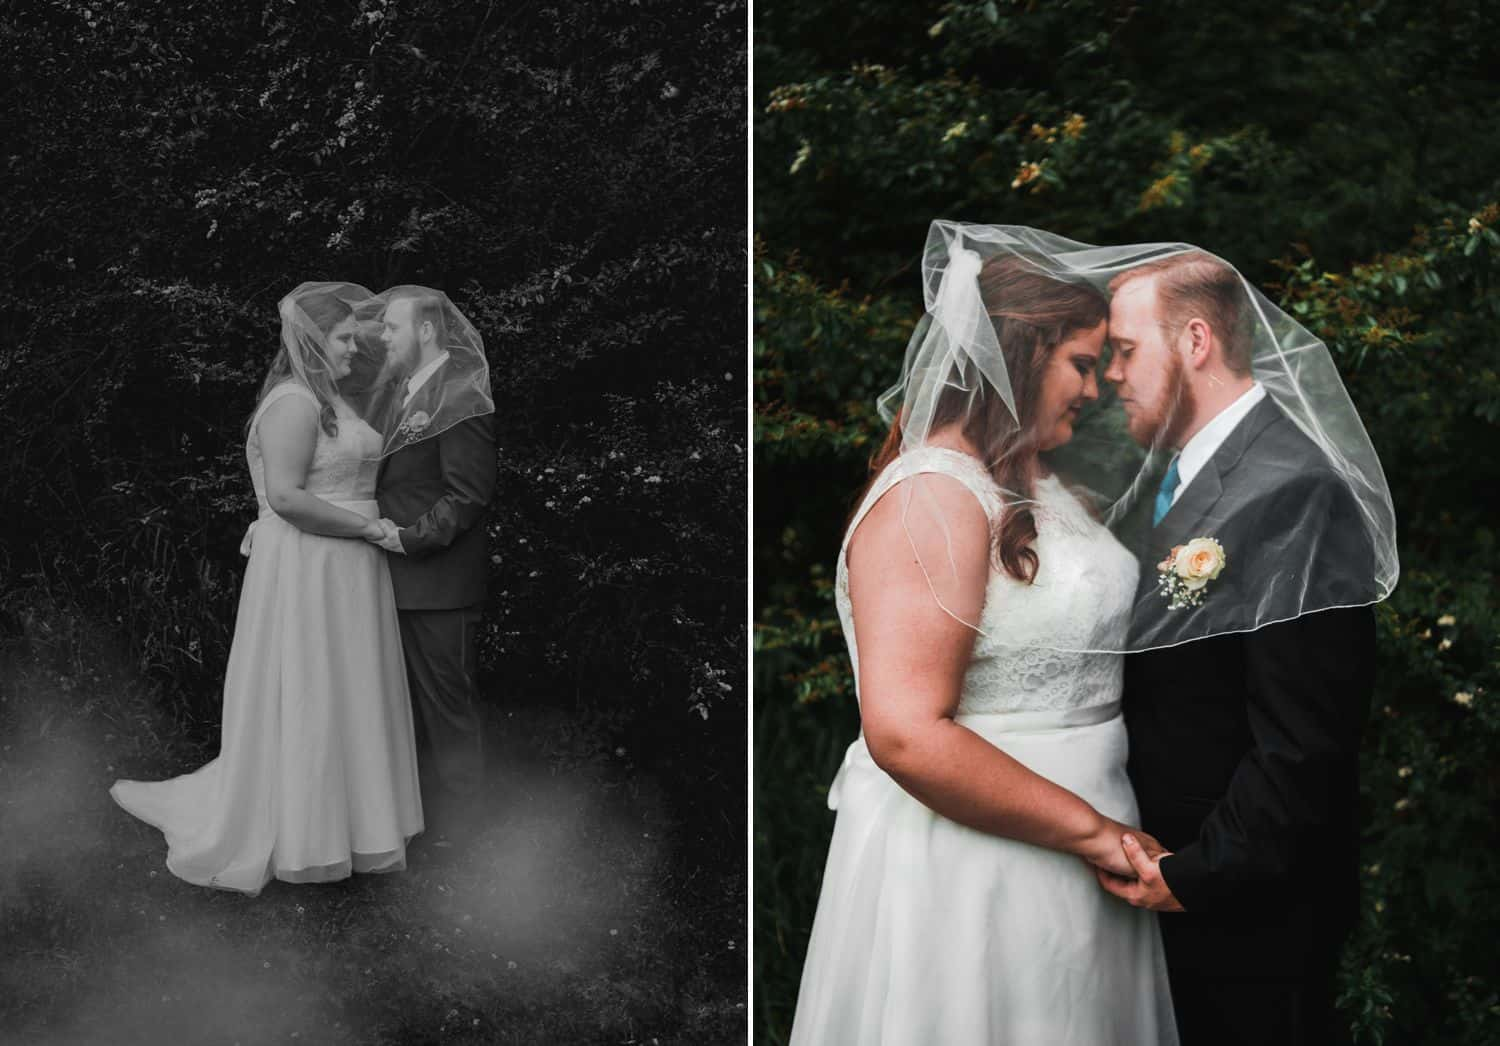 Diptych of wedding portrait, one full-length black-and-white, one 3/4 length color.